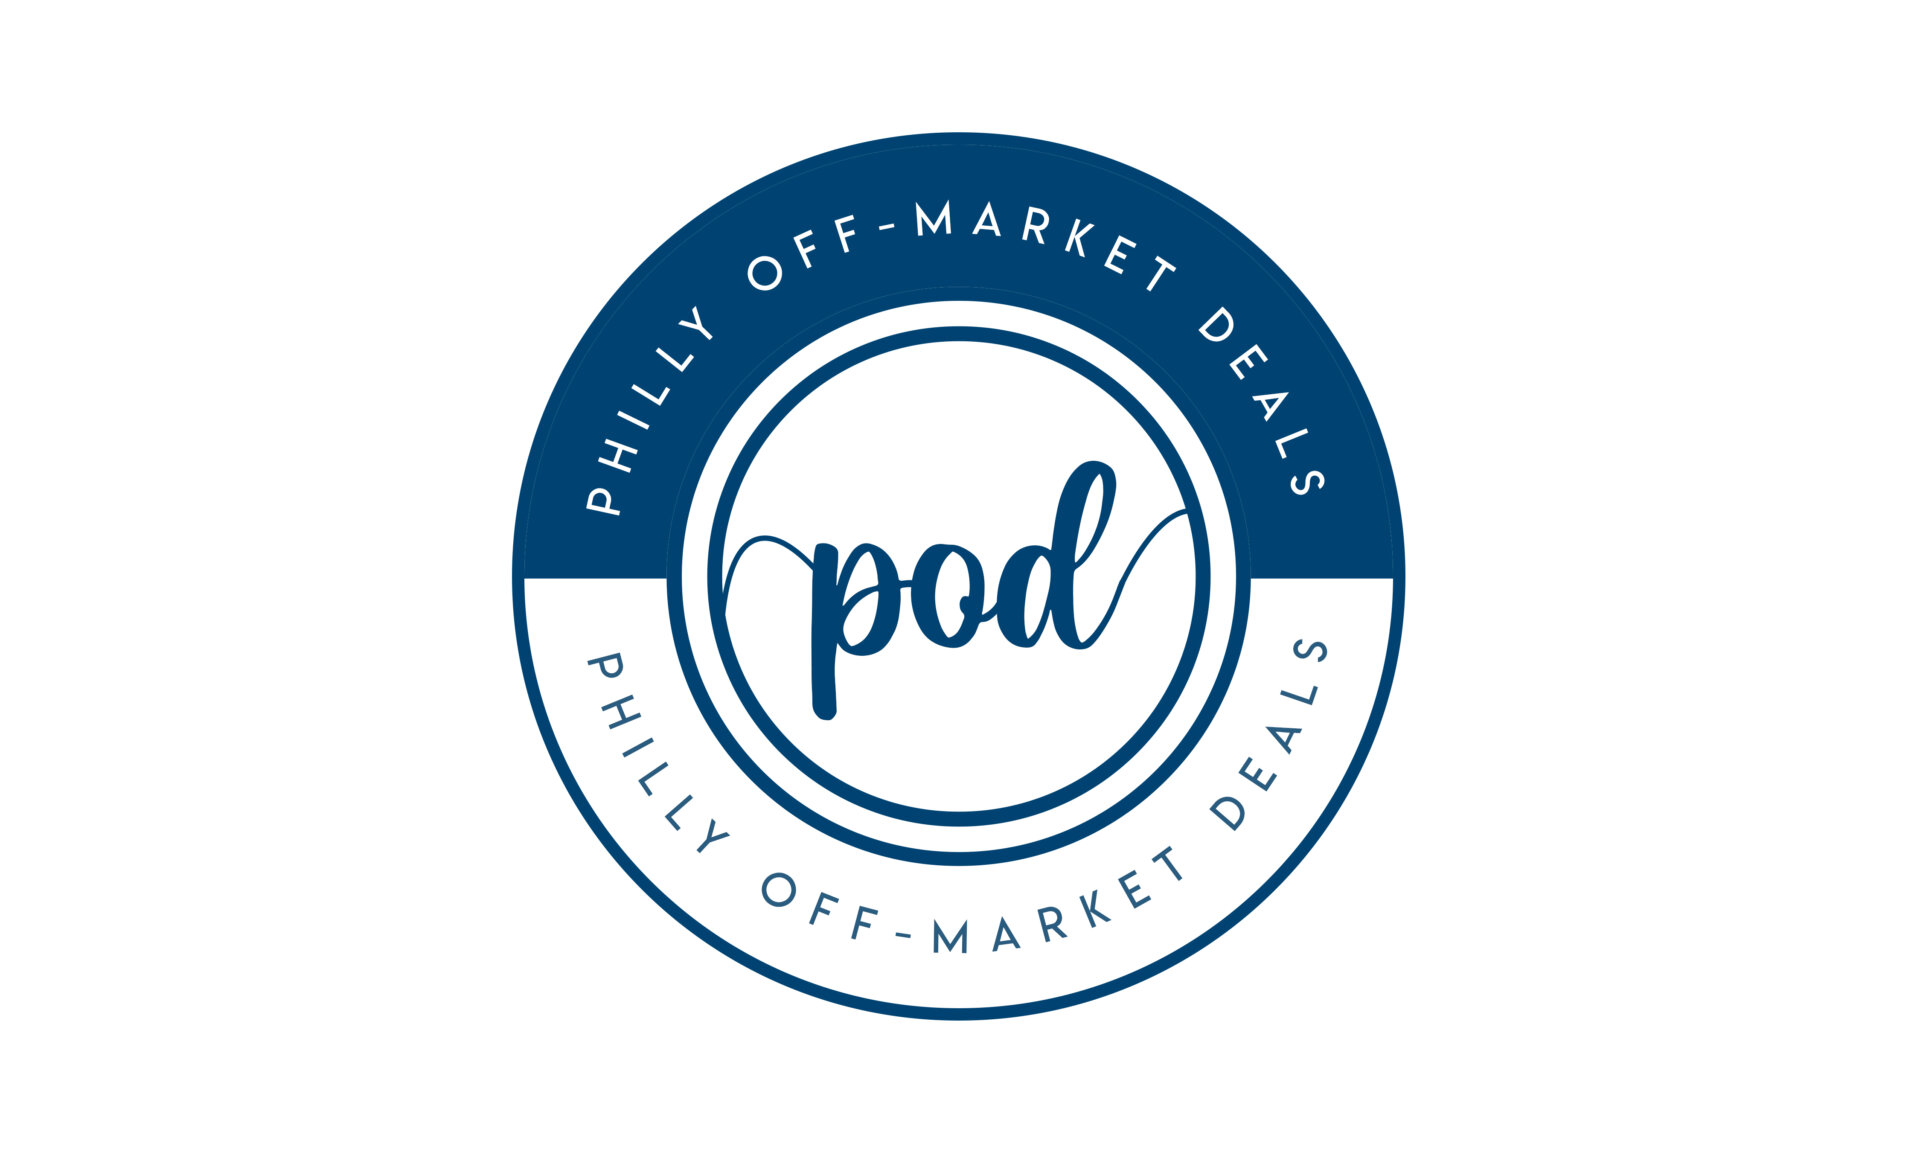 PHILLY OFF-MARKET DEALS logo